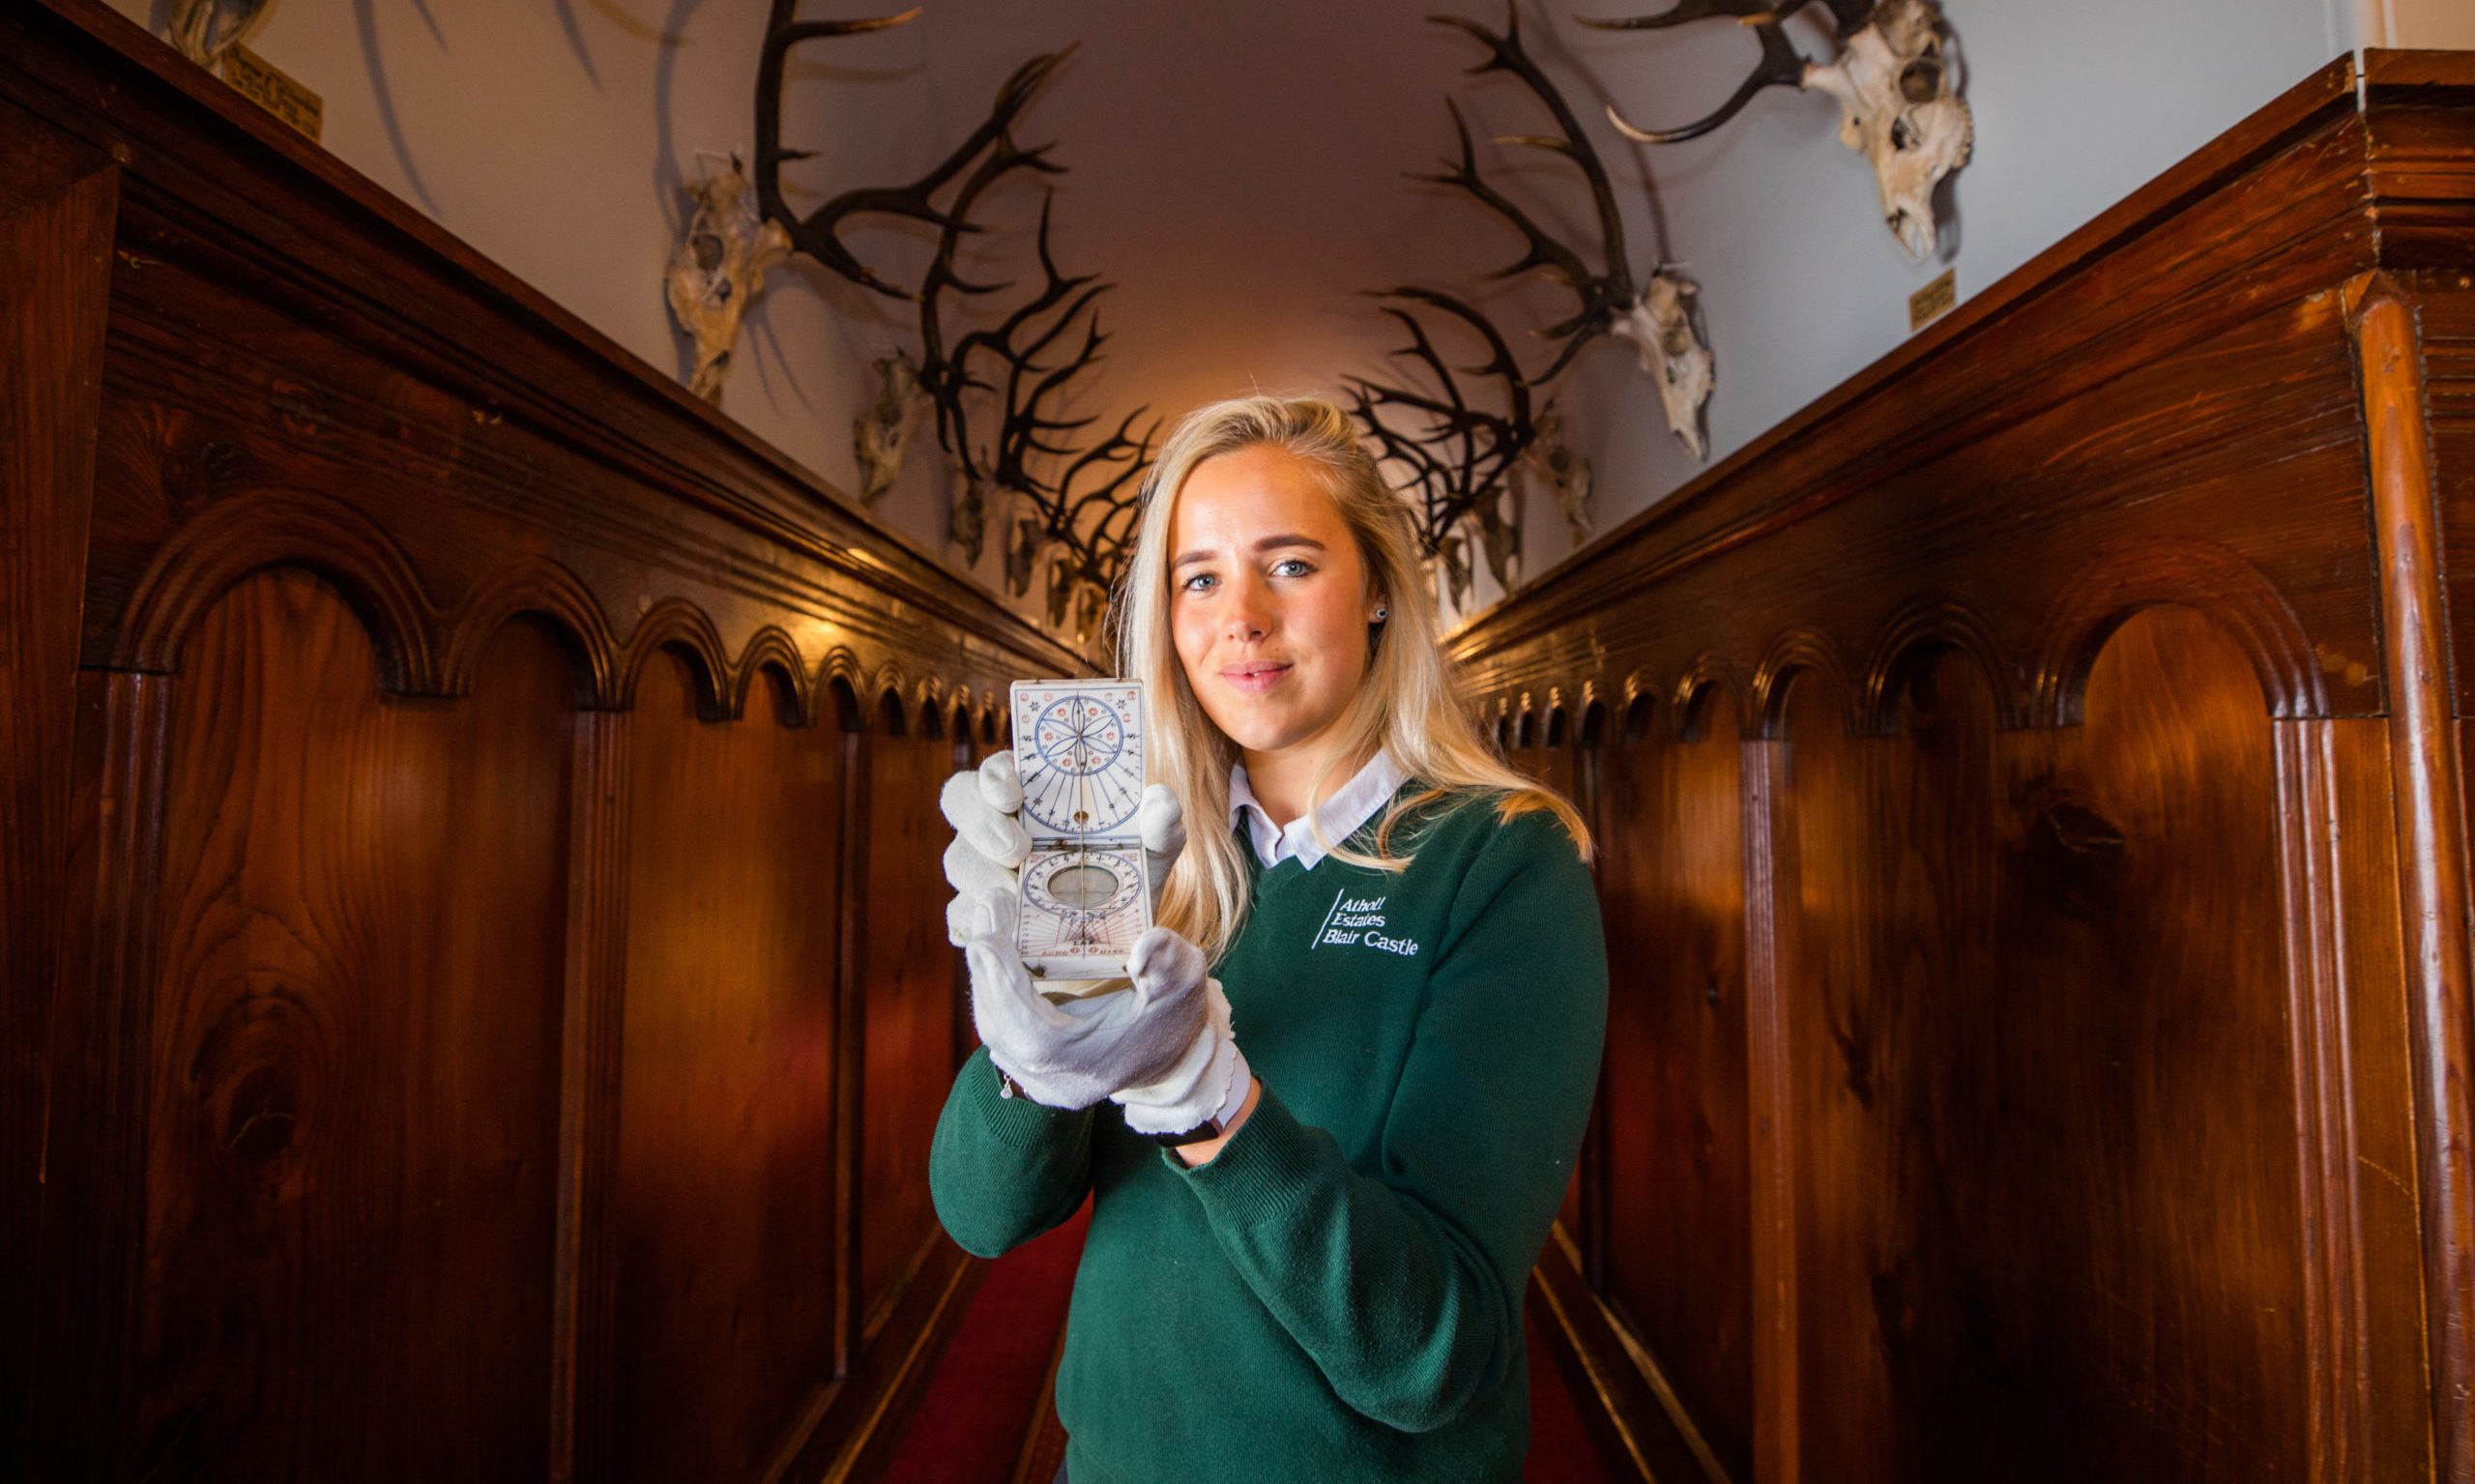 Chloe Thorton holding Bonnie Prince Charlie's compass